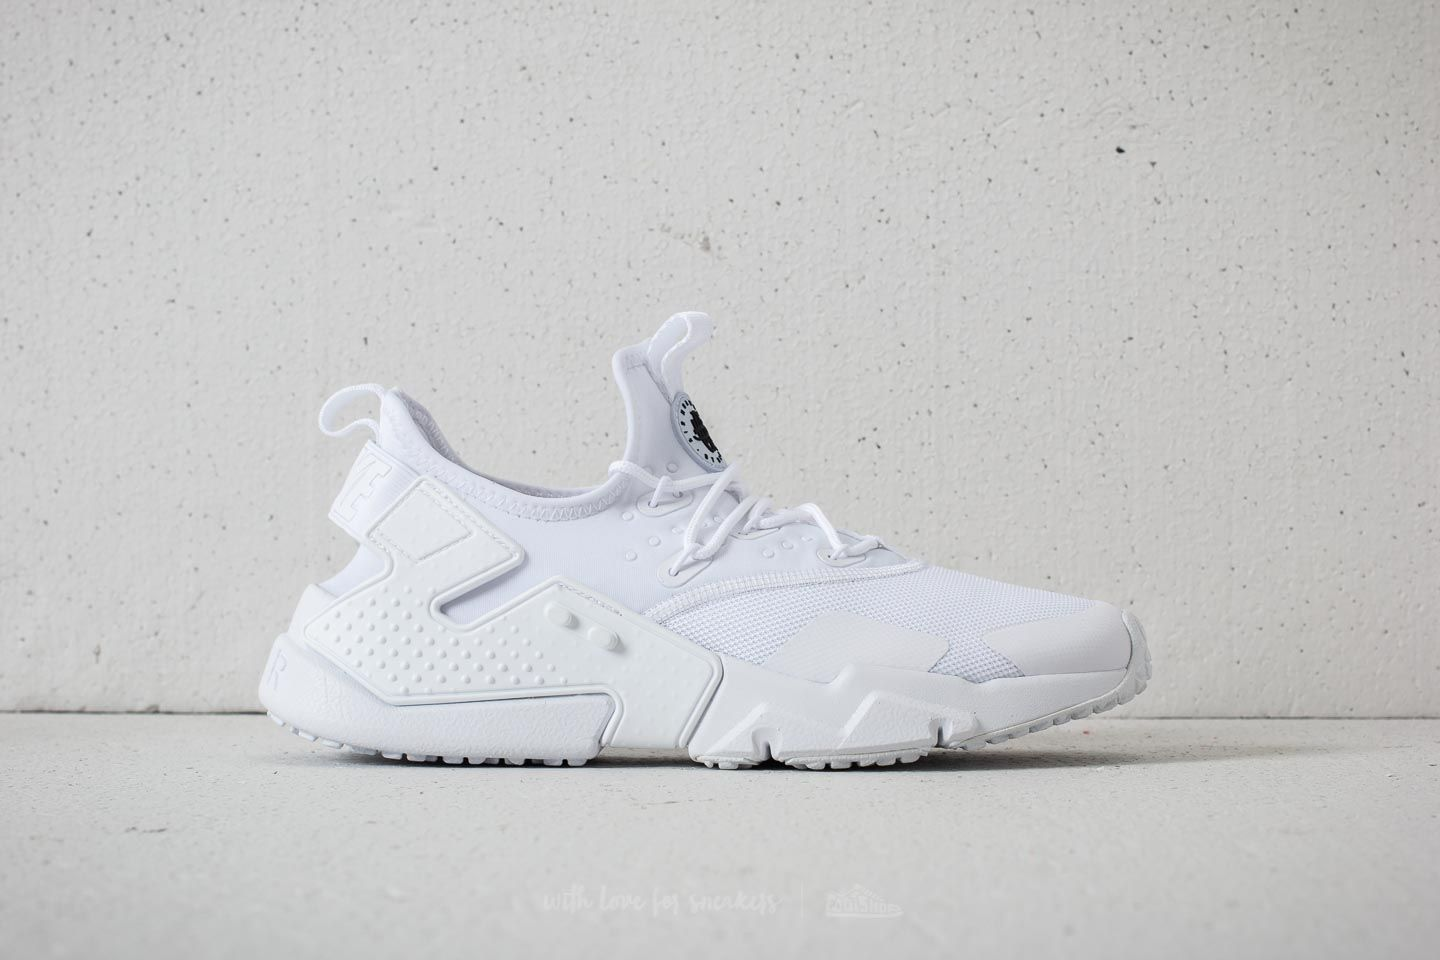 huge selection of 76fb7 8c225 Nike Air Huarache Drift White/ Black | Footshop